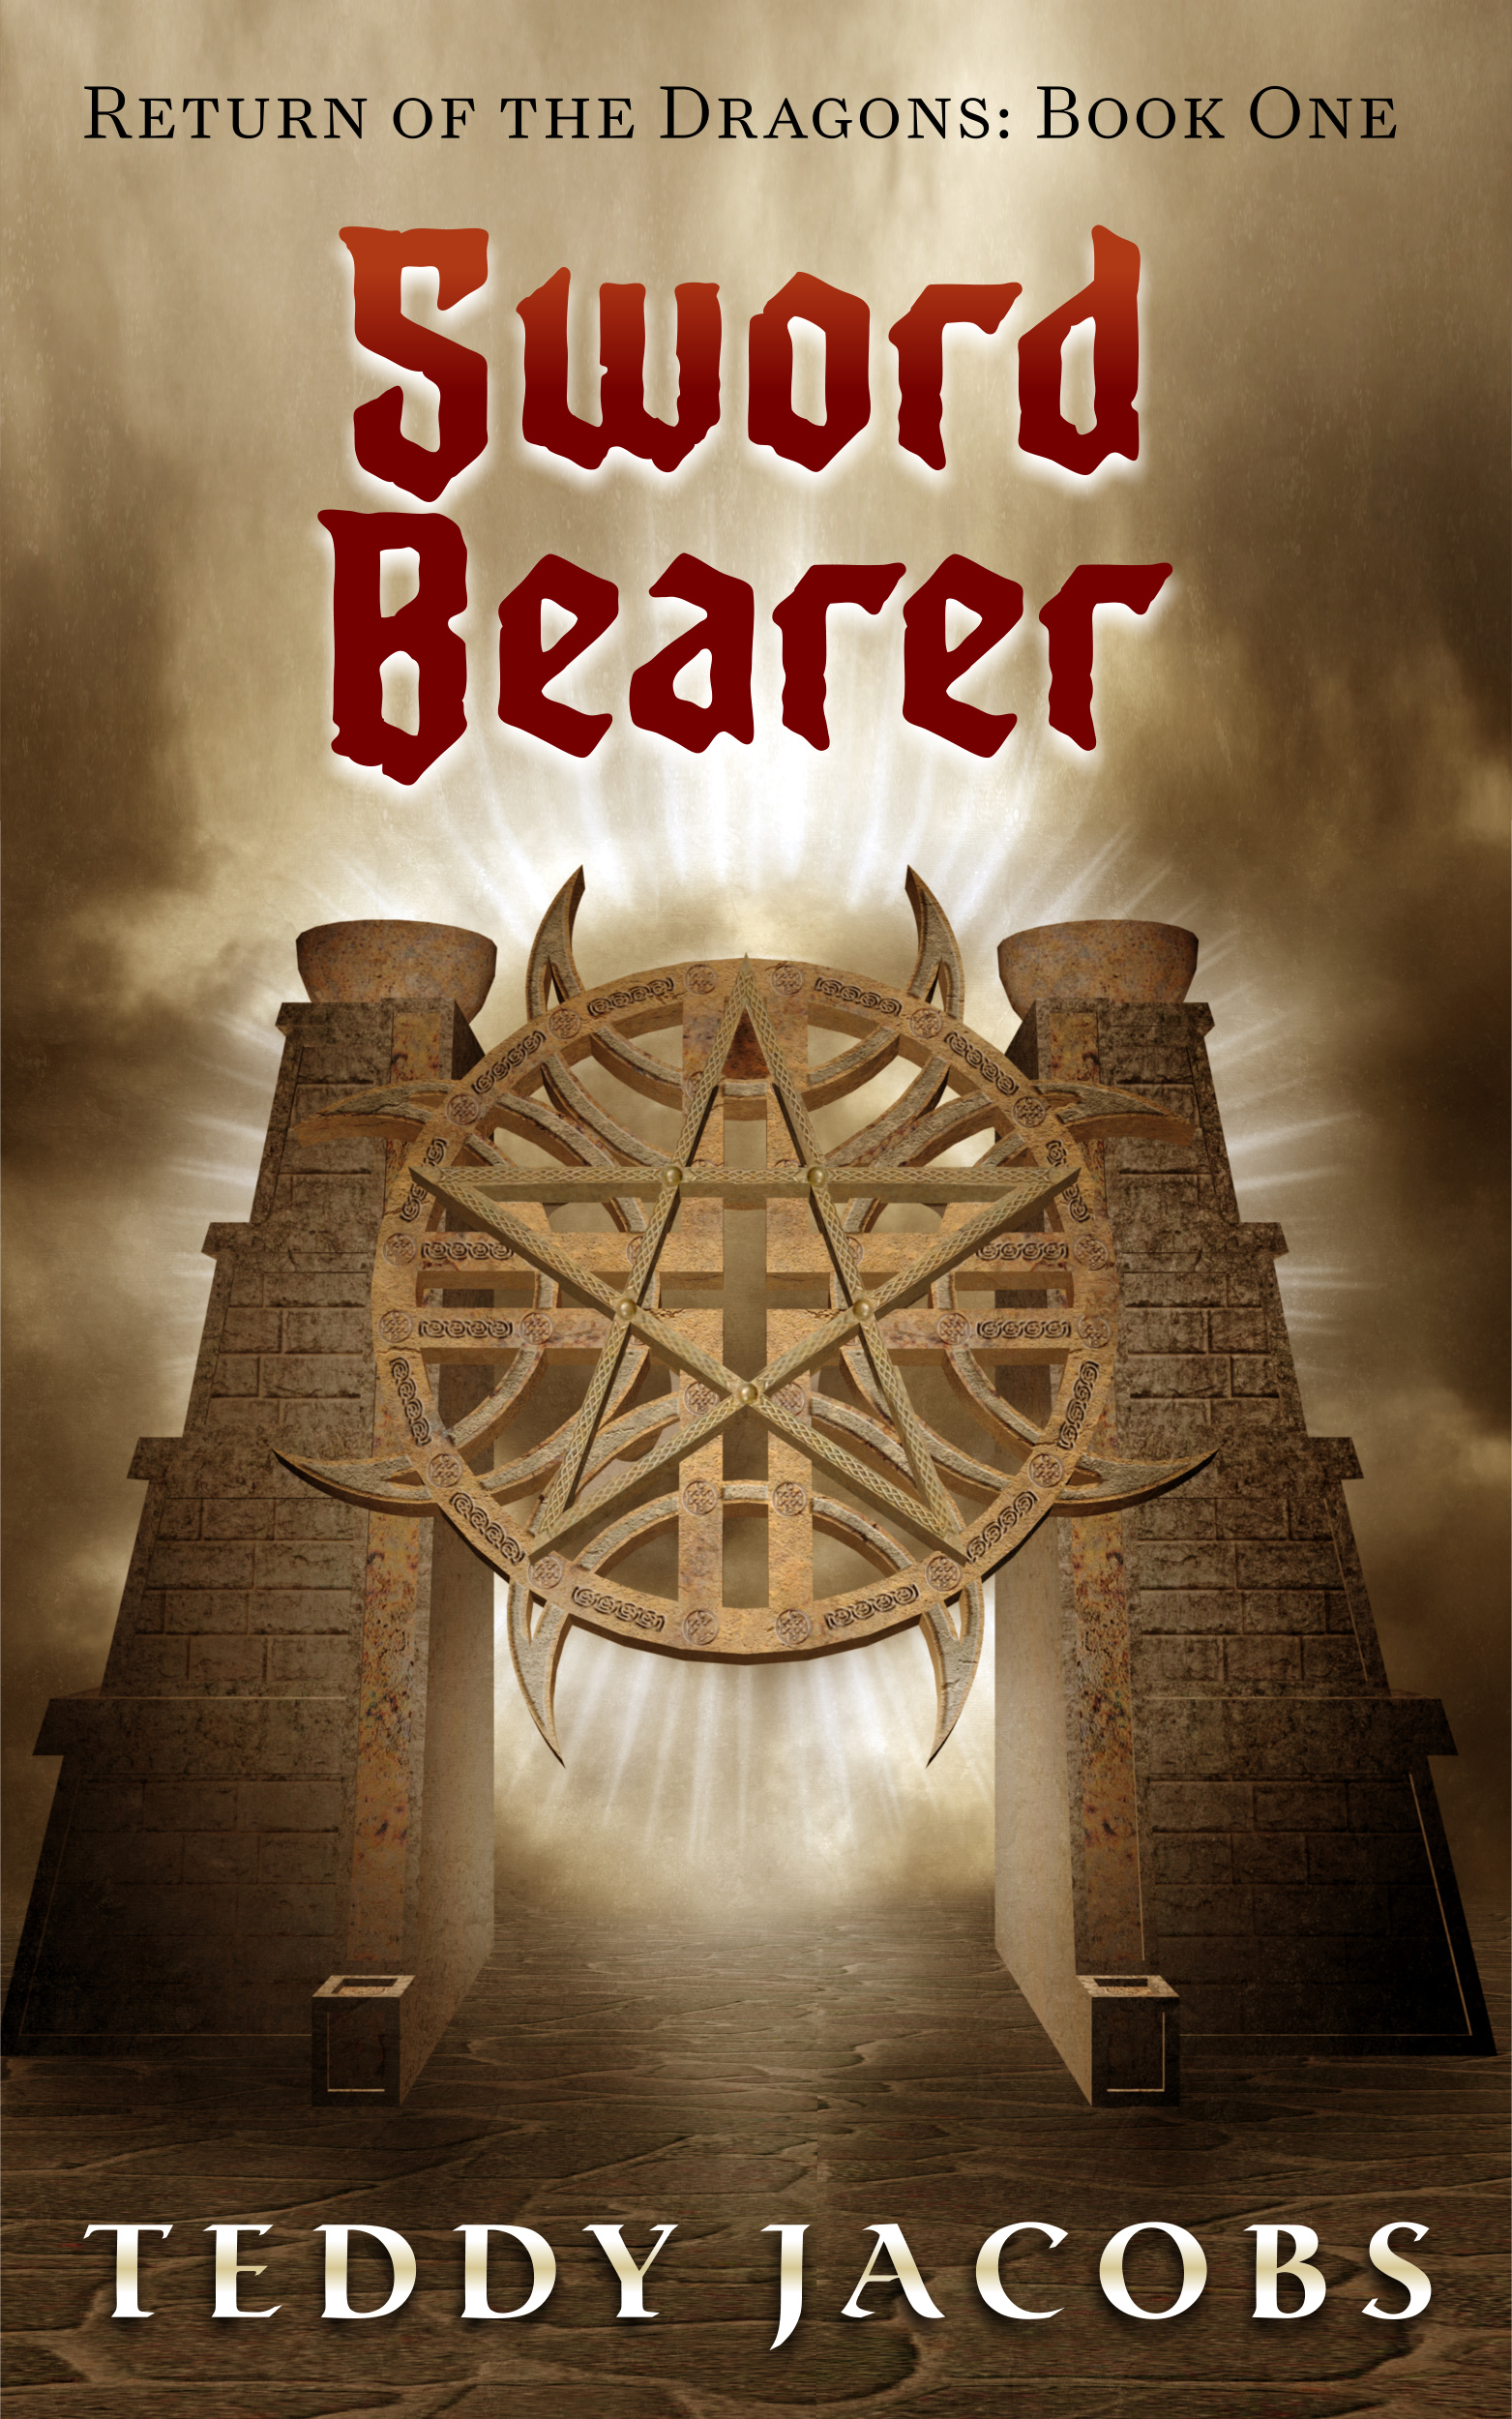 Sword_Bearer_Large_Image_Cover_Teddy_Jacobs